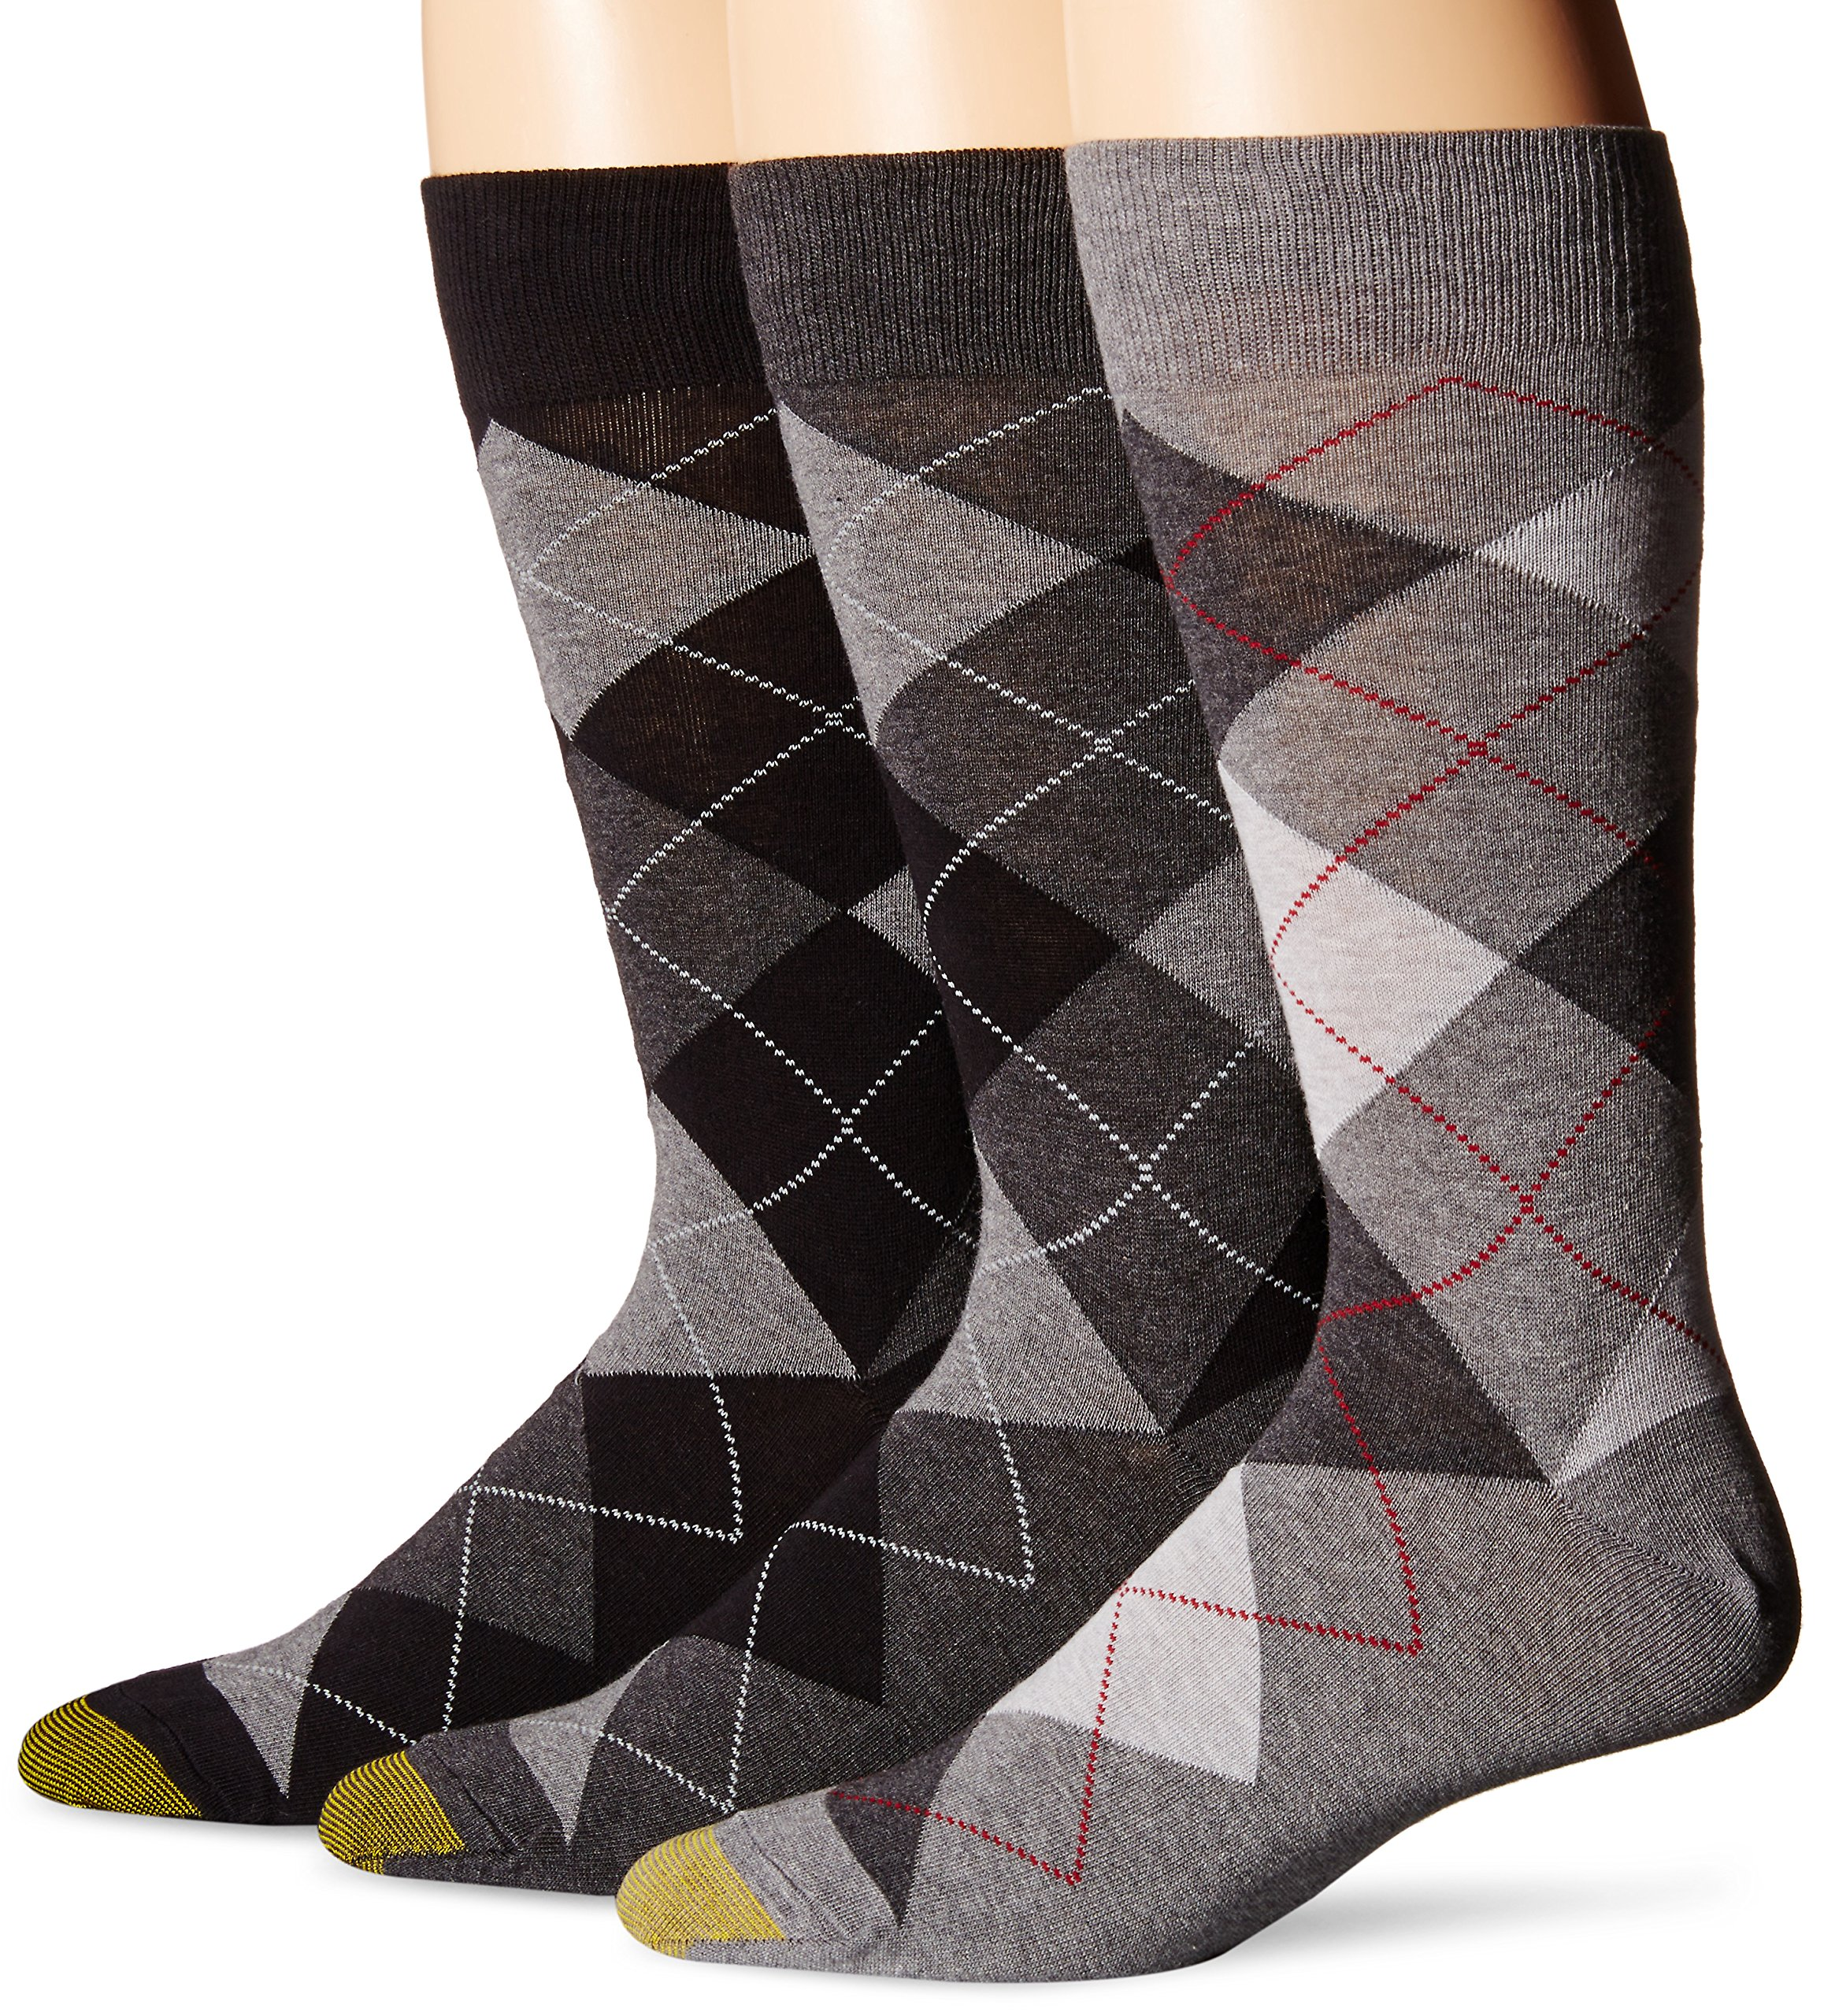 Gold Toe Men's 3-Pack Carlyle Argyle Crew Sock Black Grey Argyle Mix Shoe Size: 6-12.5 by Gold Toe